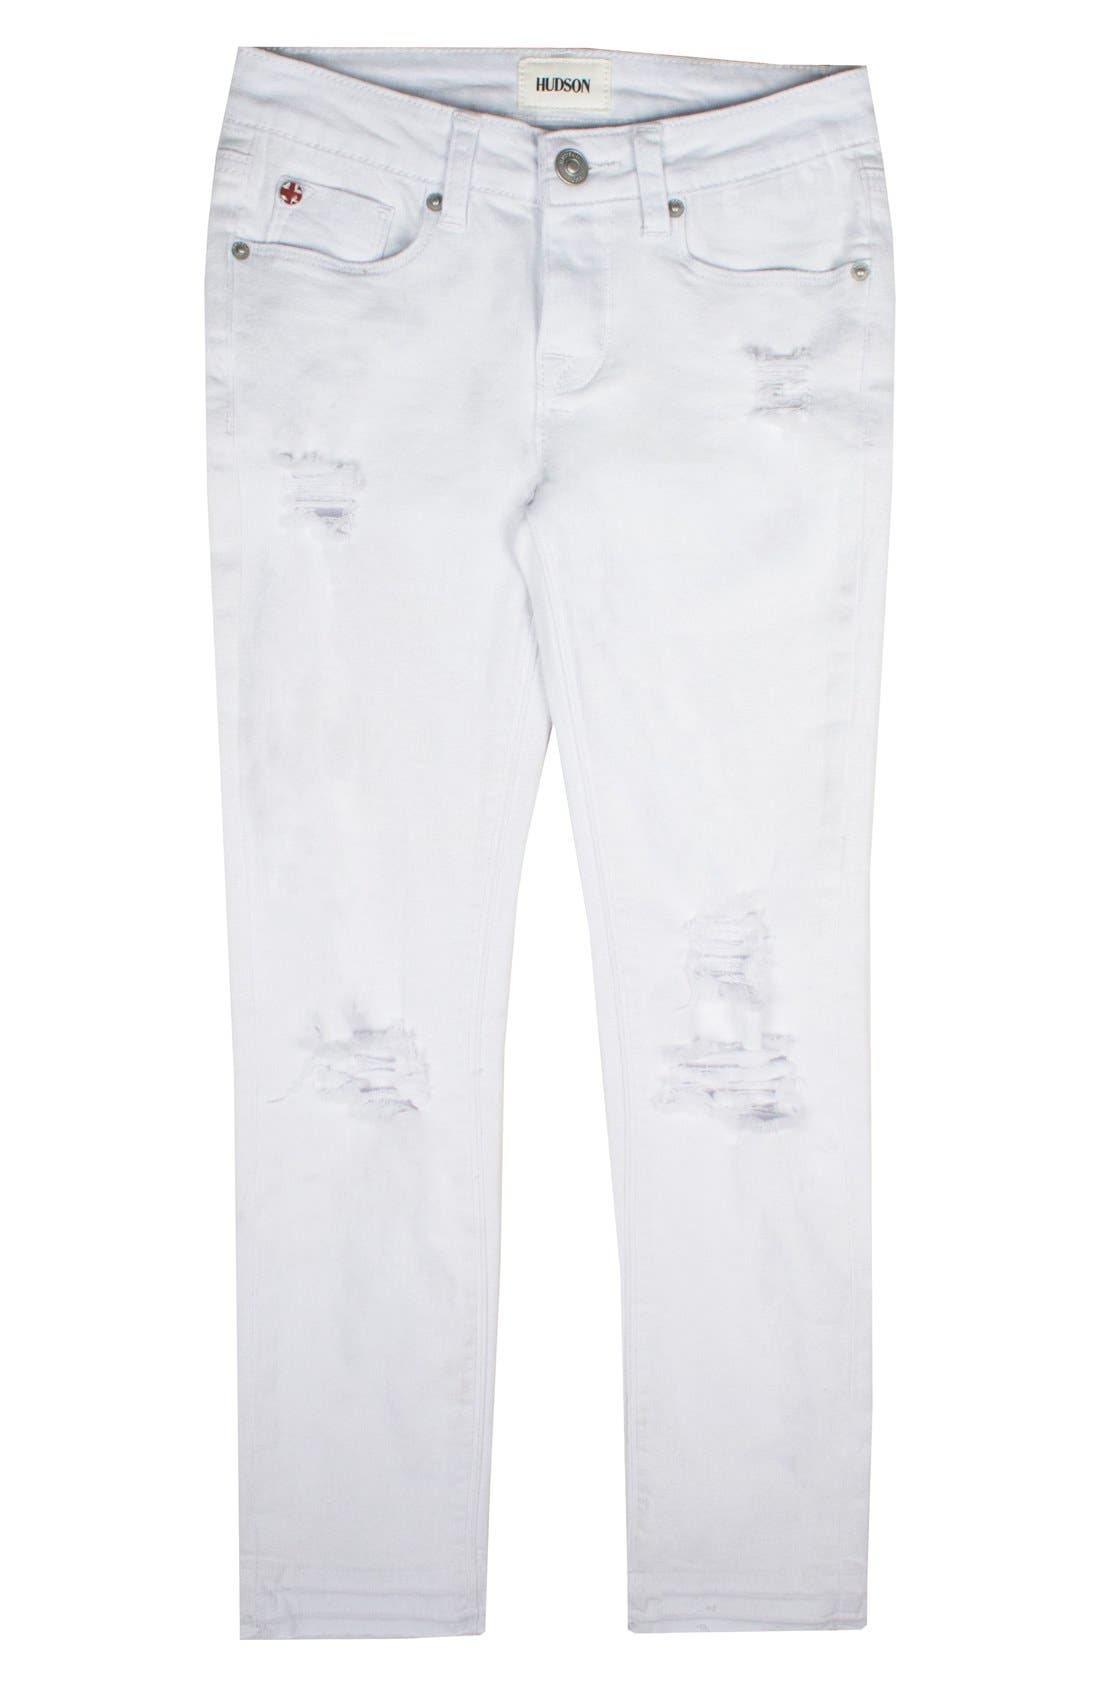 Seaside Crop Skinny Jeans,                             Main thumbnail 1, color,                             White Abyss